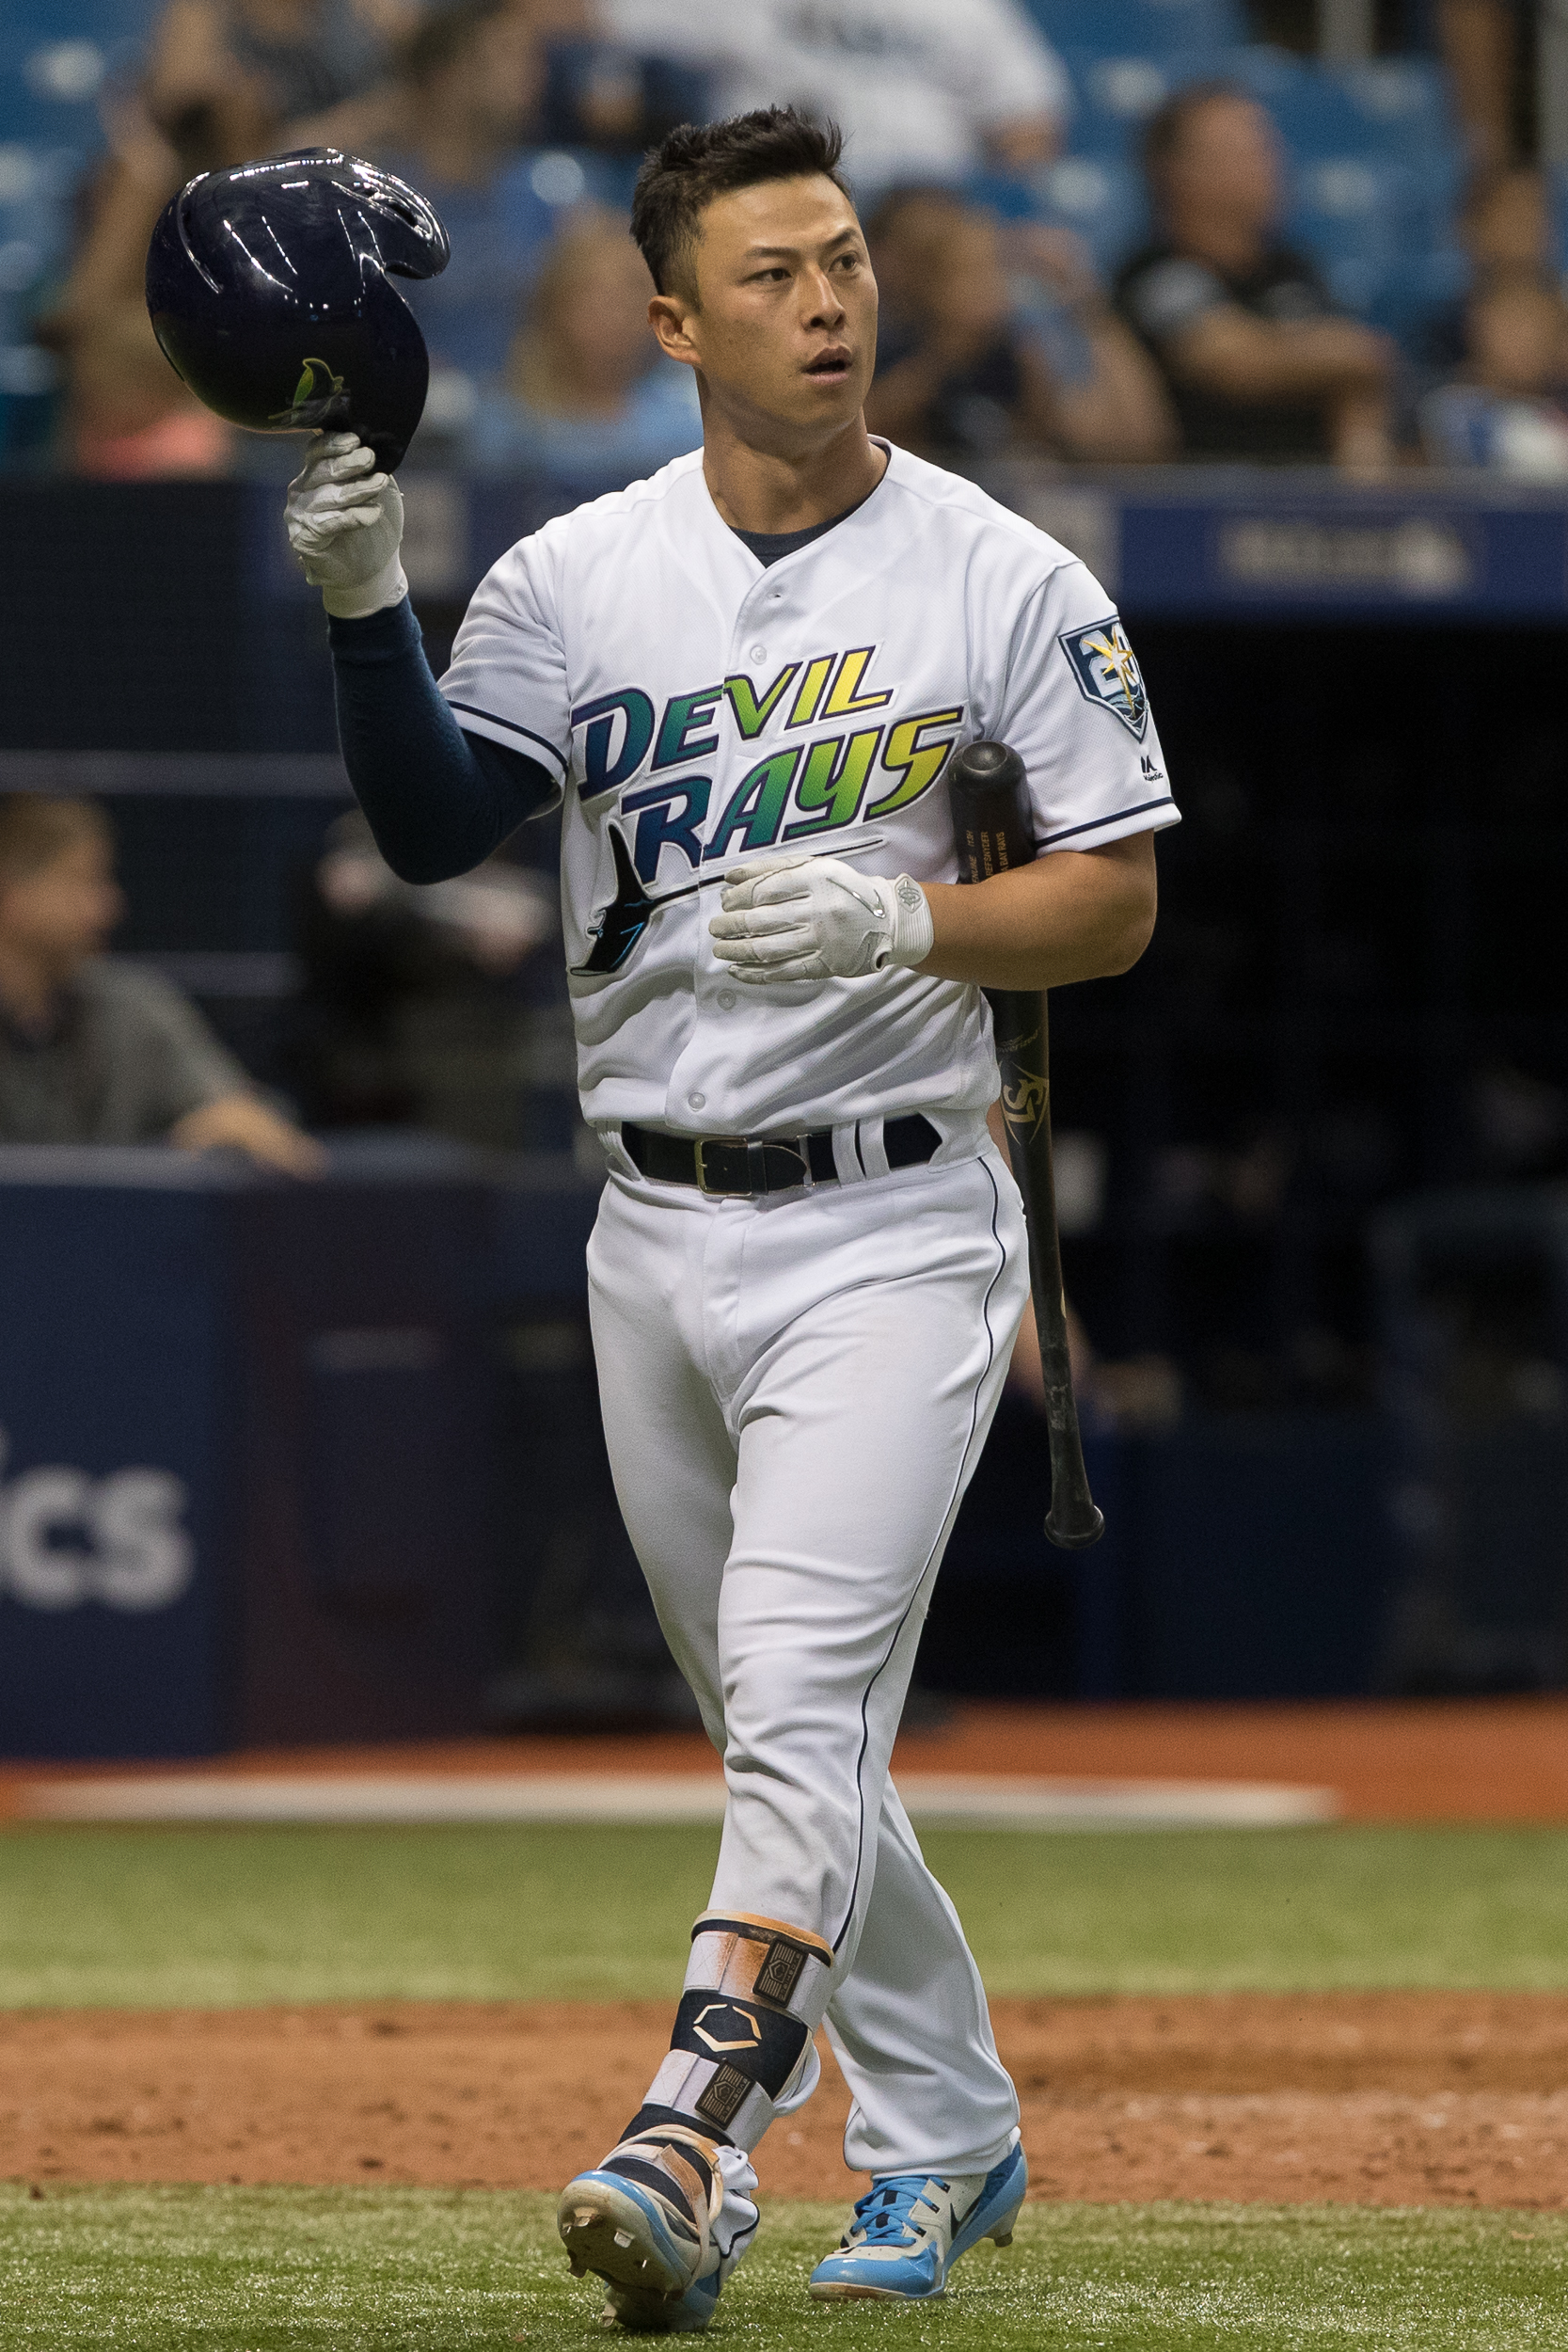 Rob Refsnyder frustrated after striking out./STEVEN MUNCIE